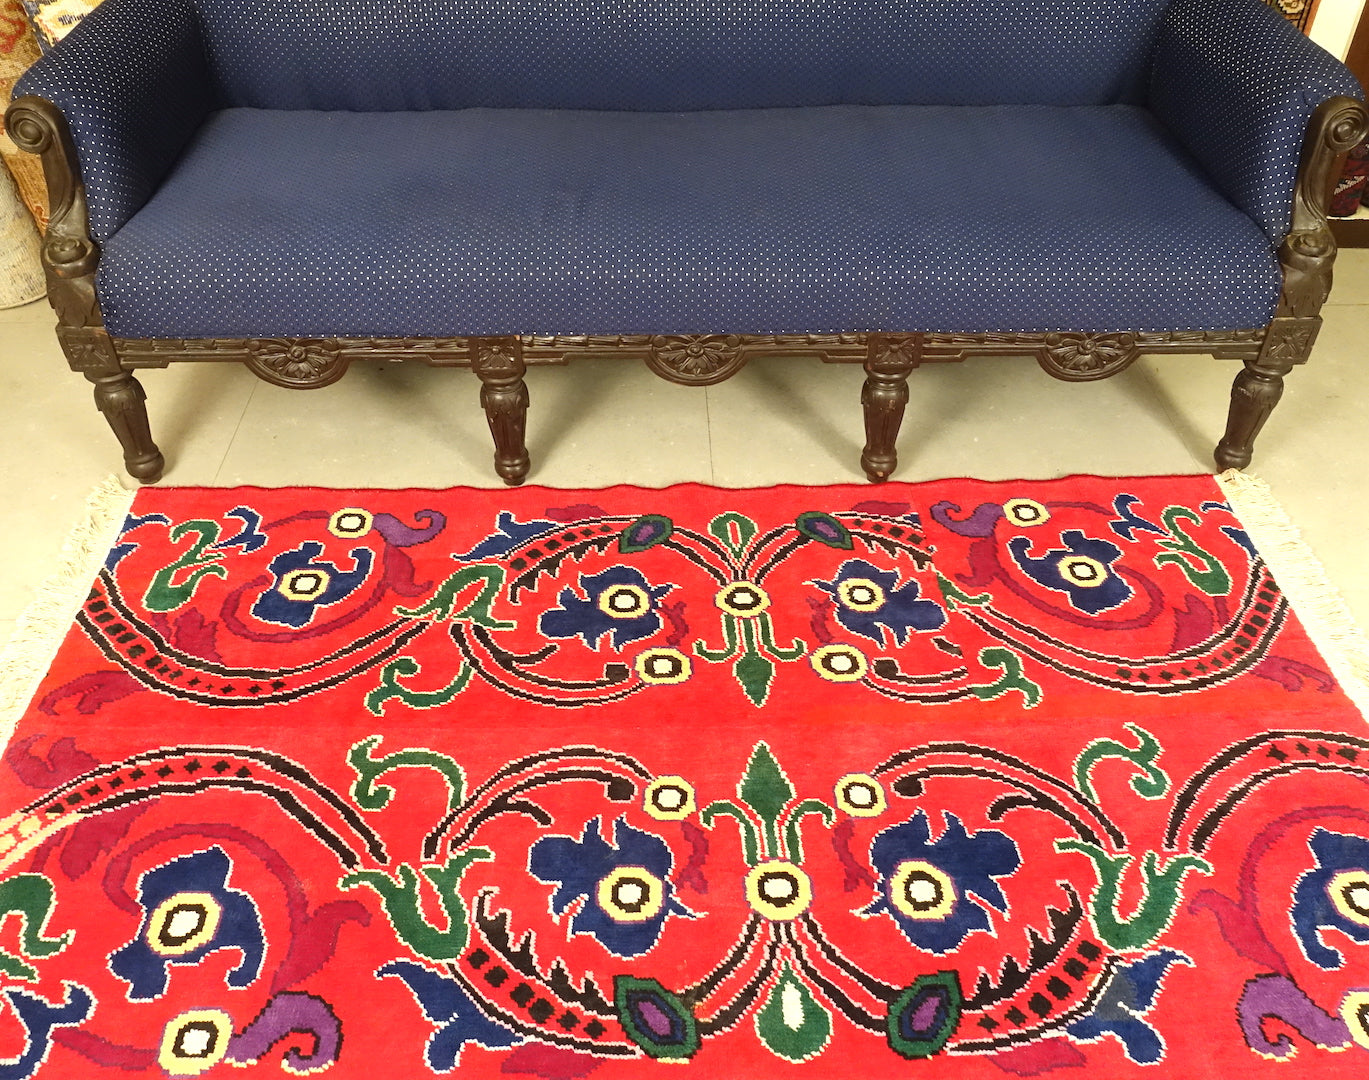 A 3 feet by 5 feet tibetian wool rug. The colours used on the rug are red,blue,beige and yellow.